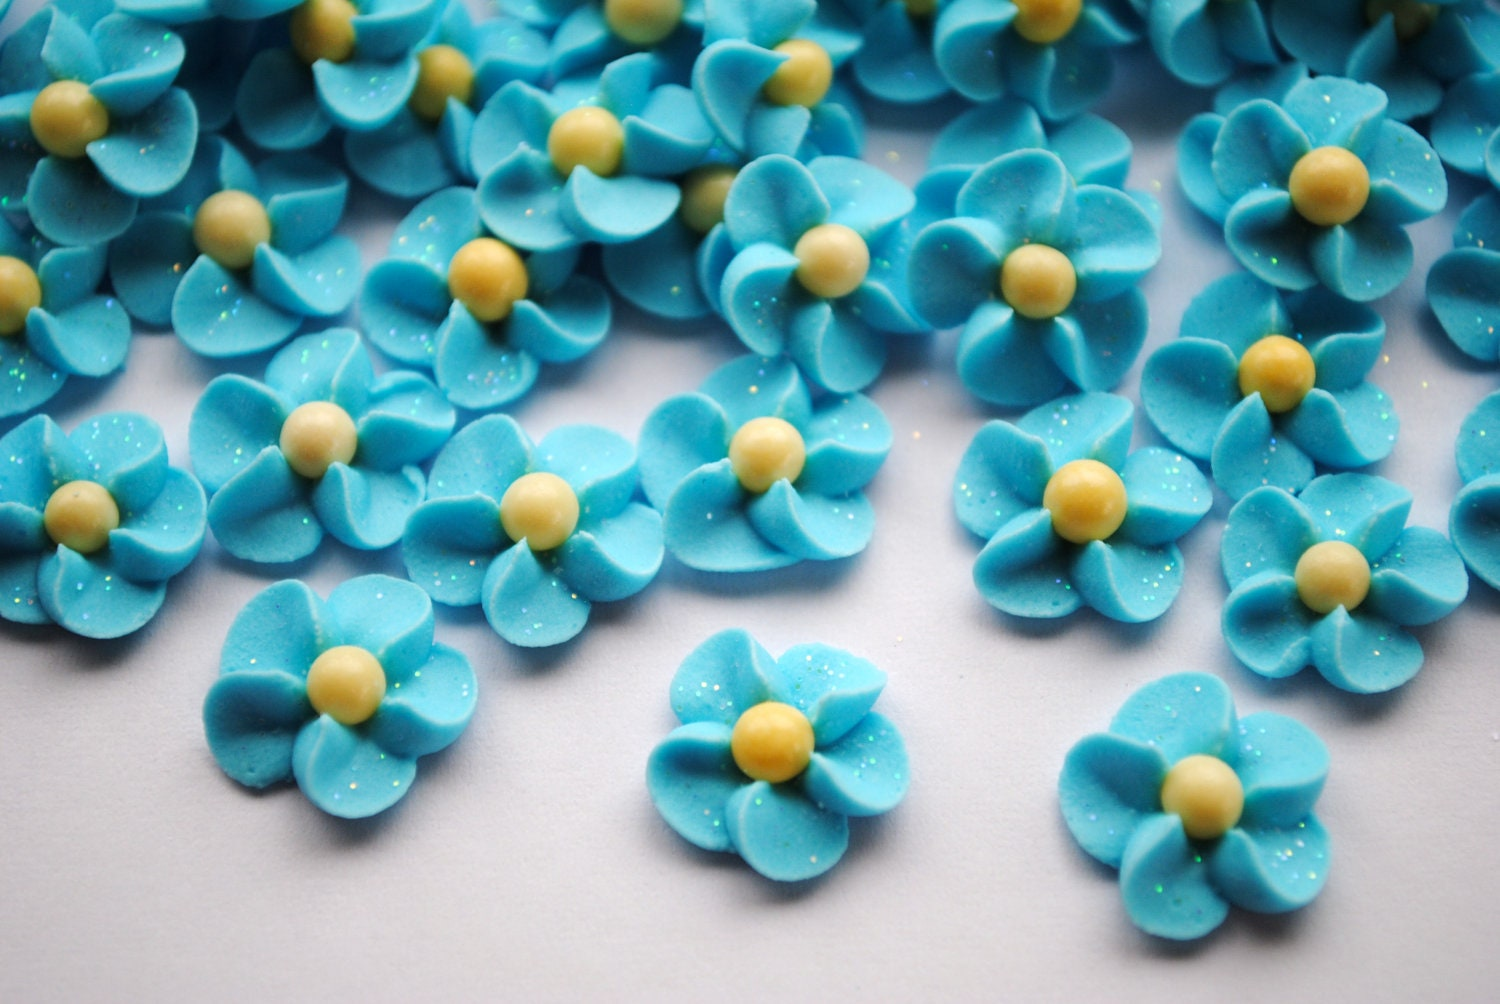 Forget Me Nots Royal Icing Flowers LIght Blue with Yellow